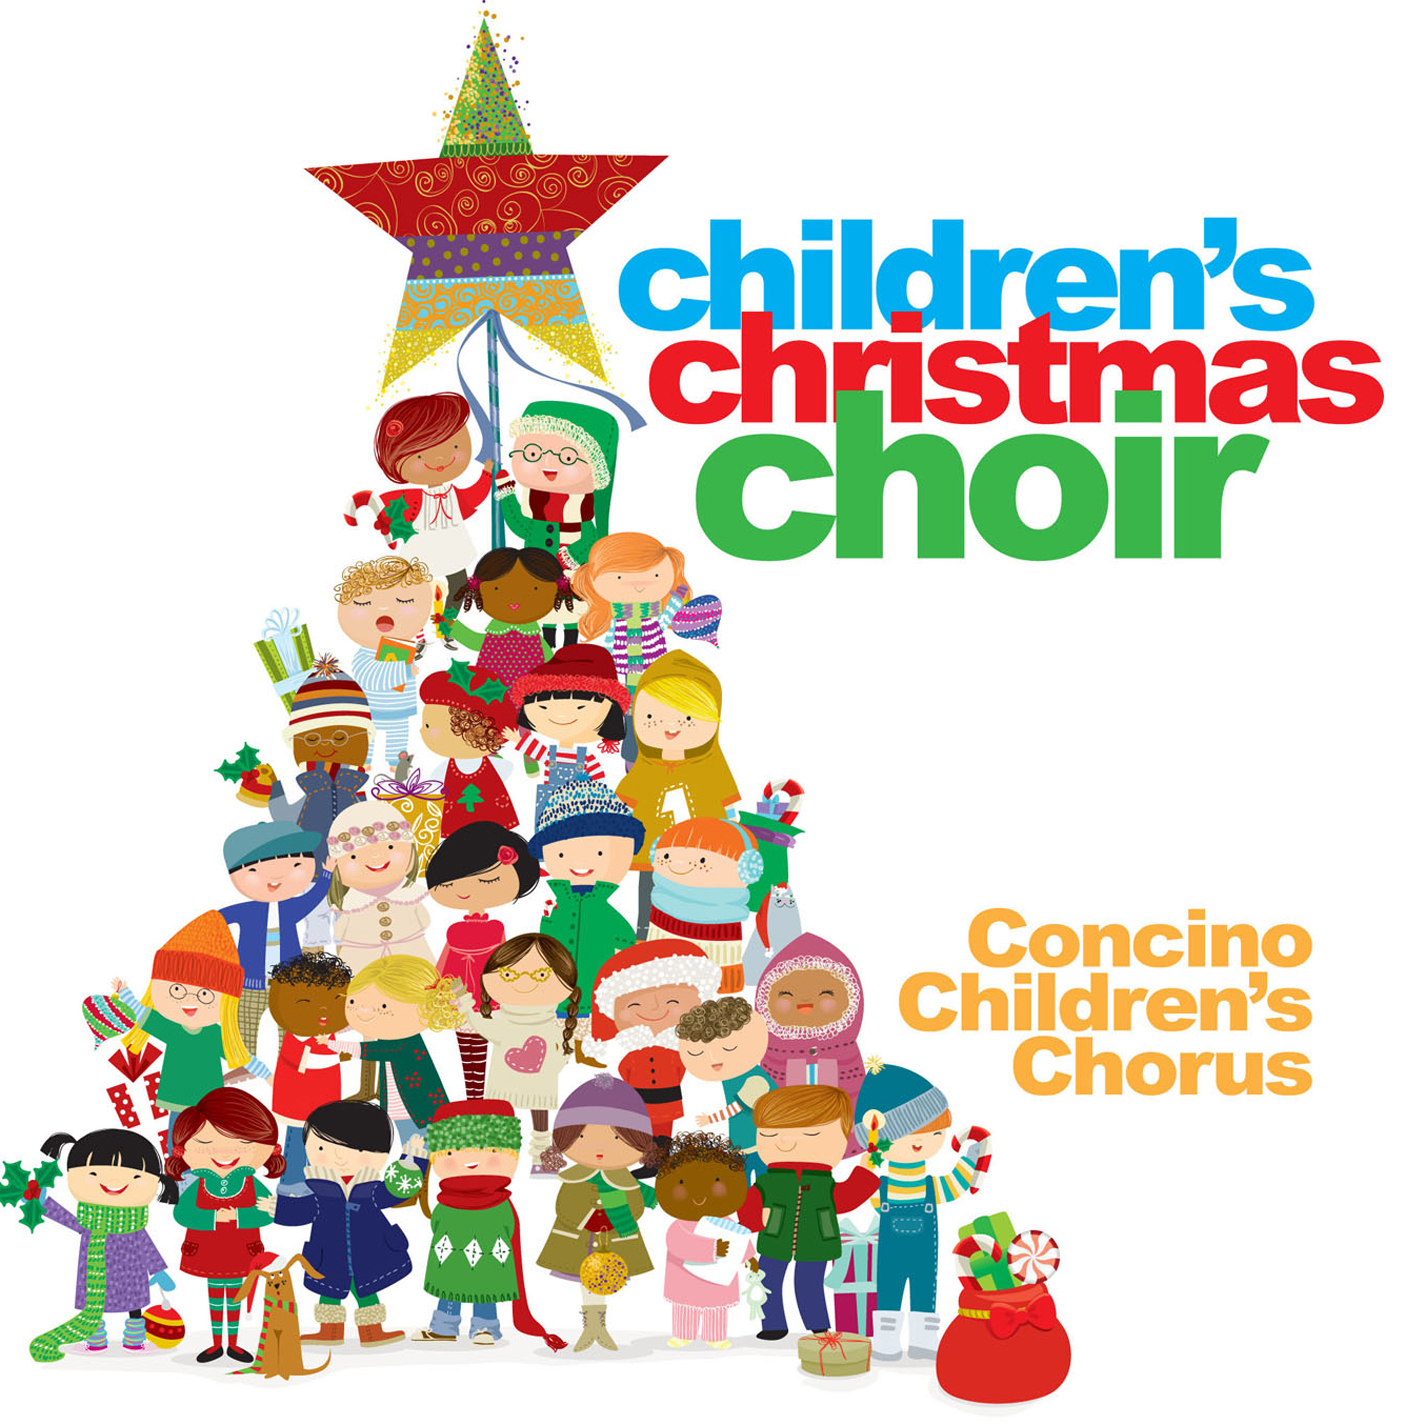 hight resolution of 1425x1425 christmas choir clipart